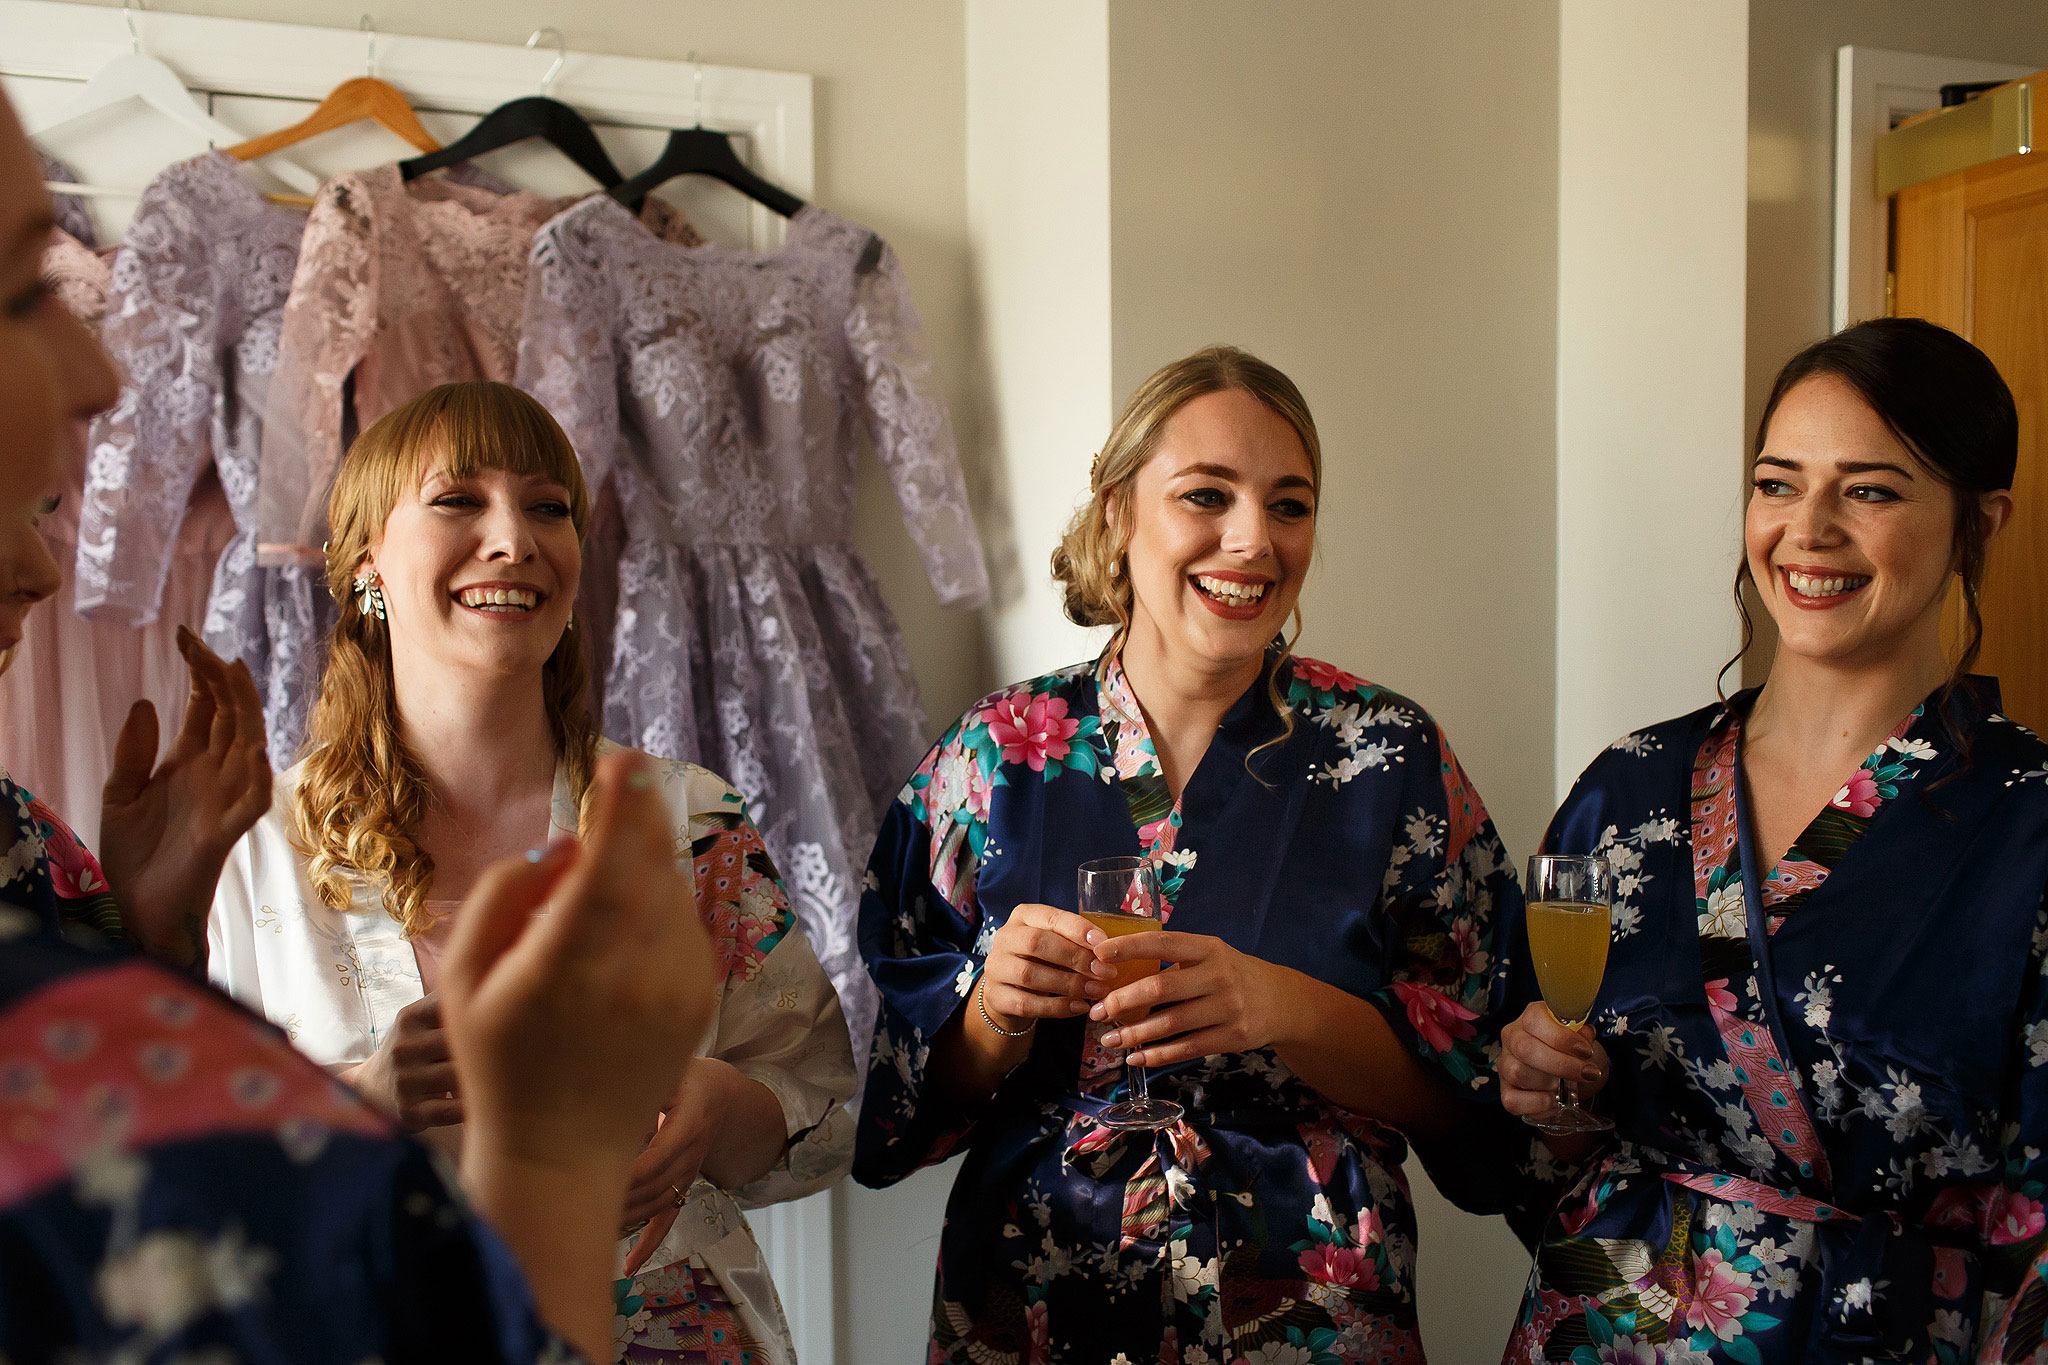 Bride and bridesmaids laughing wearing matching silk wedding dresses holding champagne on morning of wedding in bridal suite - The Villa at Wrea Green Wedding Photography - Toni Darcy Photography